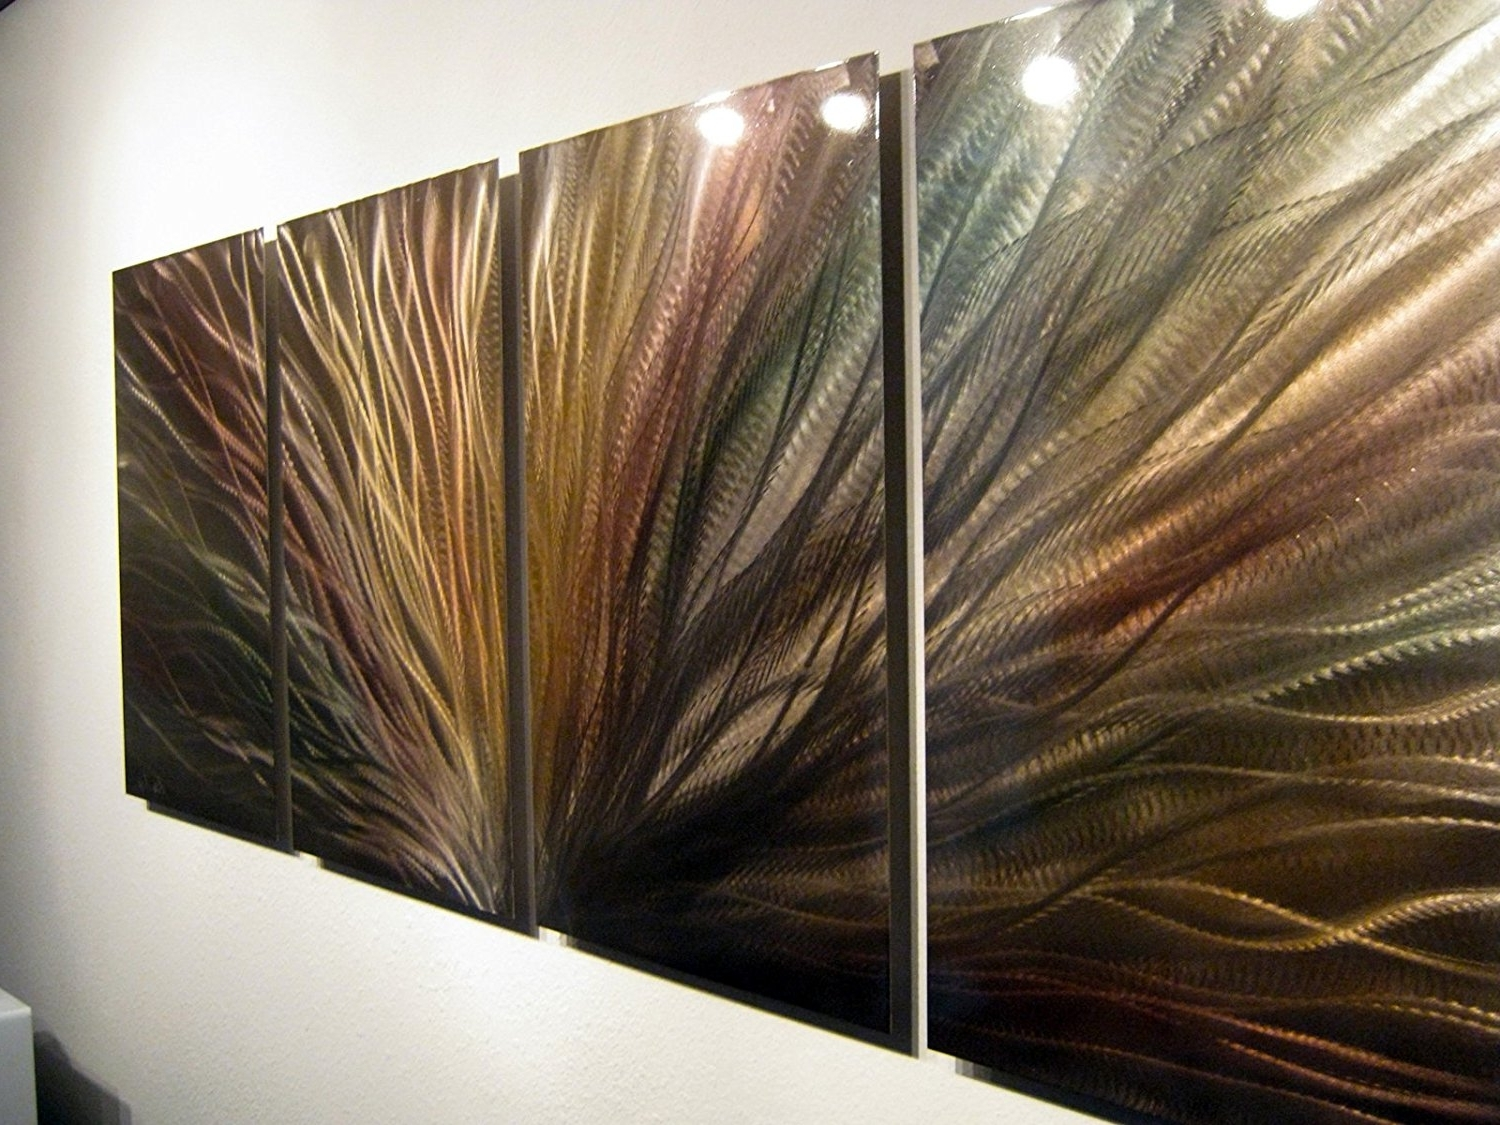 Abstract Metal Wall Art Panels Regarding Most Current Abstract Metal Wall Art Panels: Beautiful And Elegant (View 15 of 15)